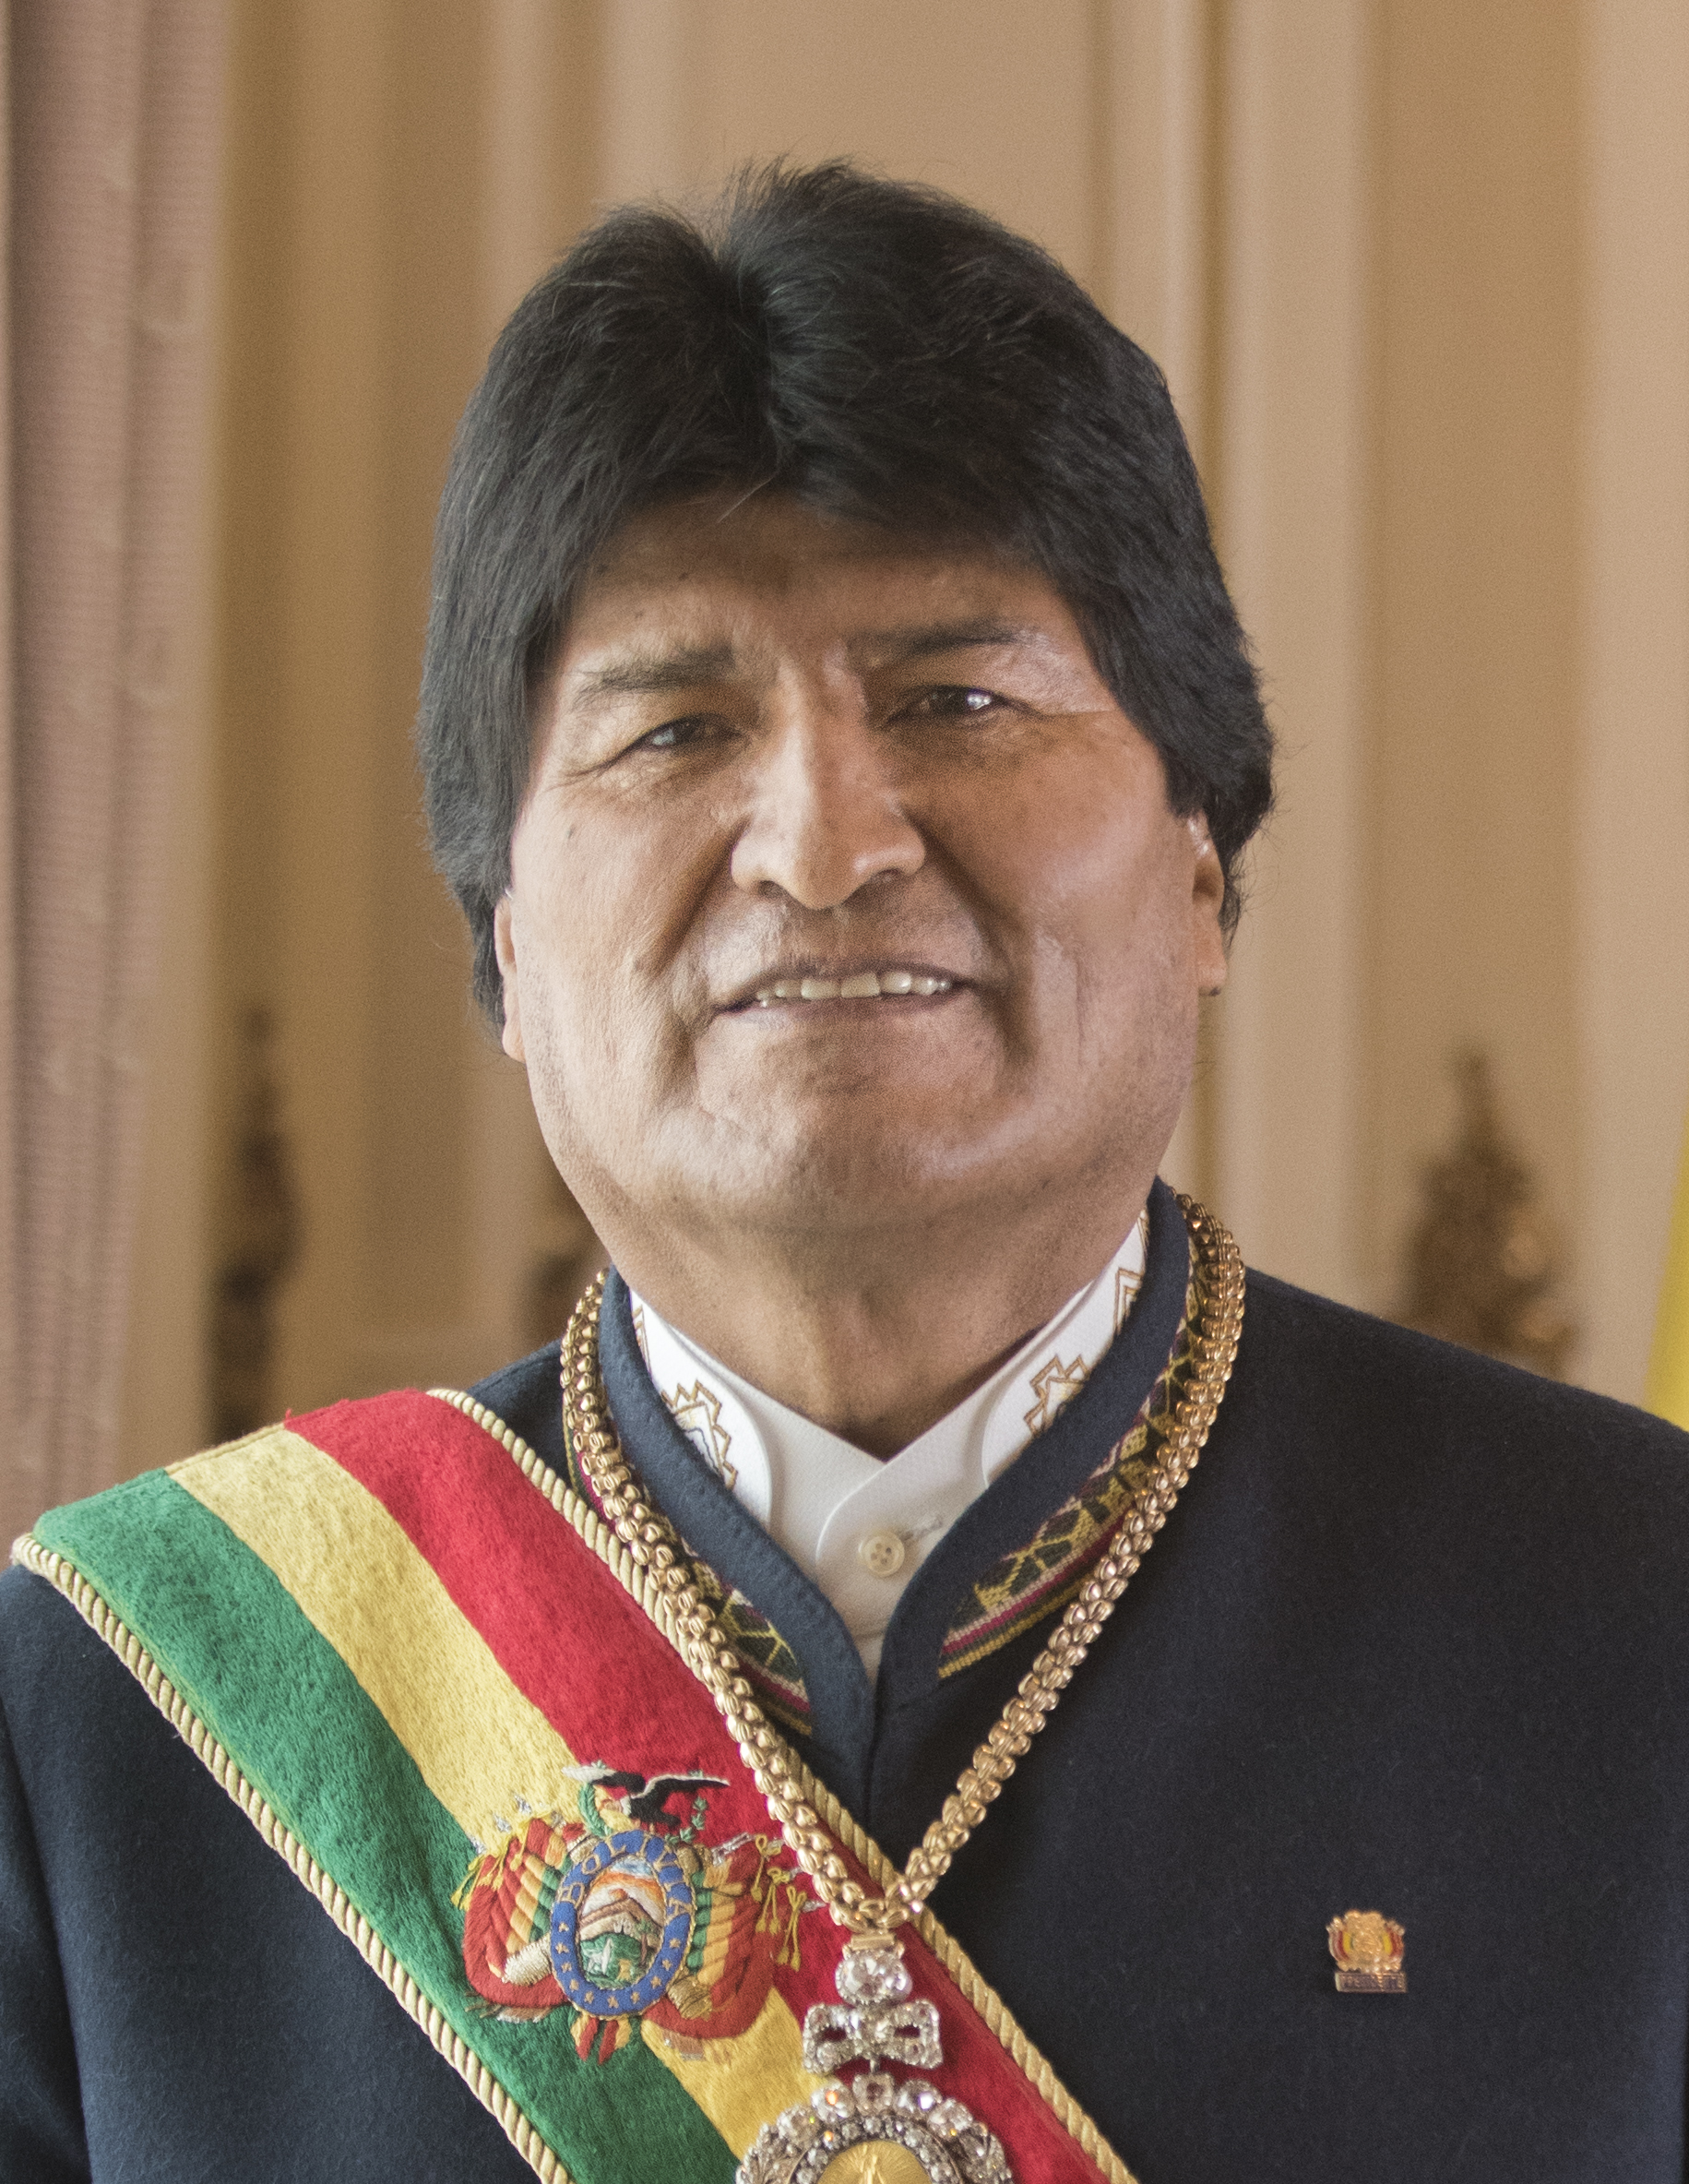 Evo_Morales_Ayma_(cropped_2)